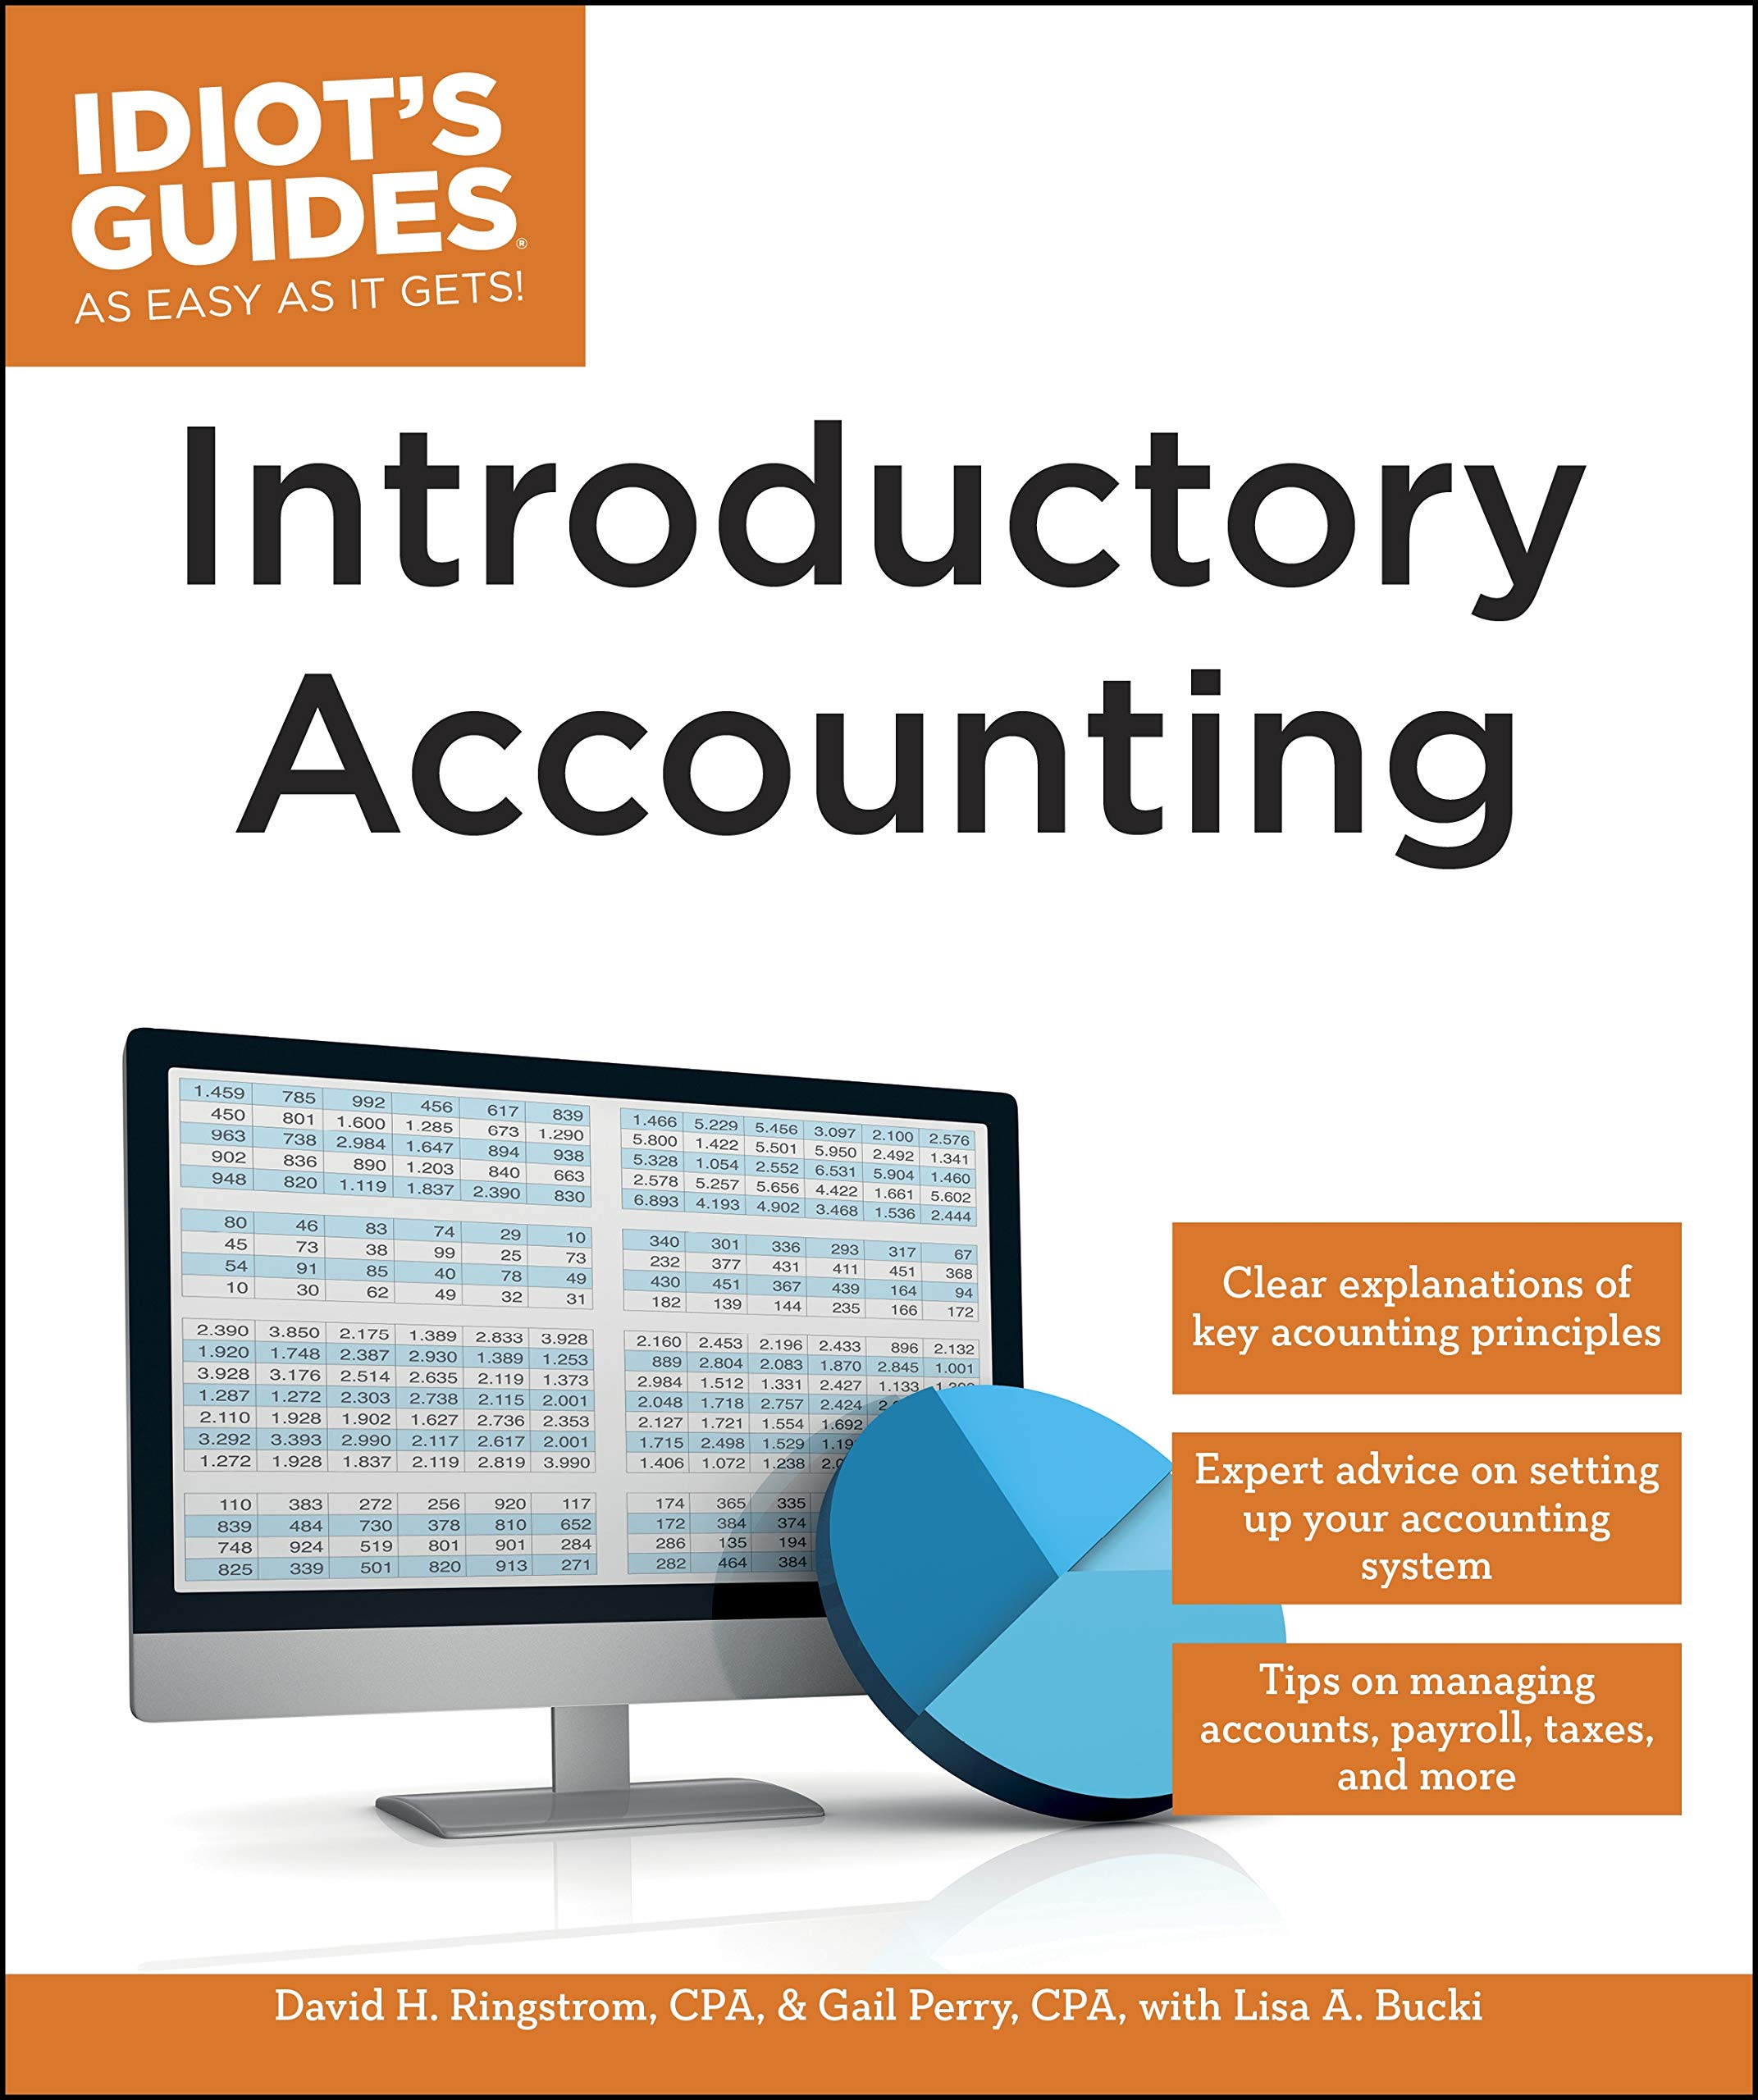 Introductory Accounting (Idiot's Guides)